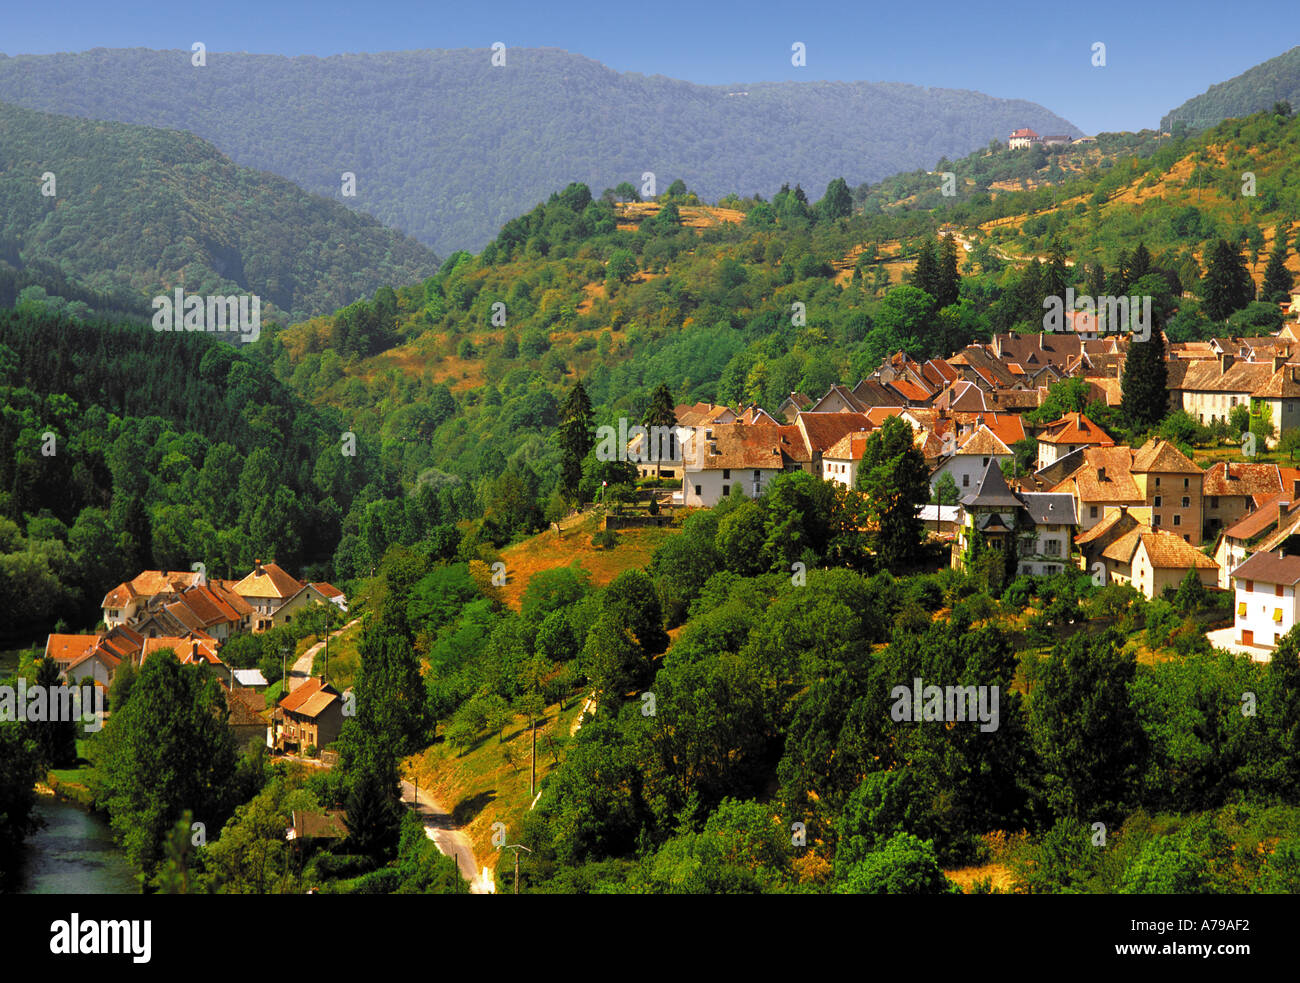 france francehe compte doubs valley of the river loue mouthiers haute pierre france europe french european eu union - Stock Image